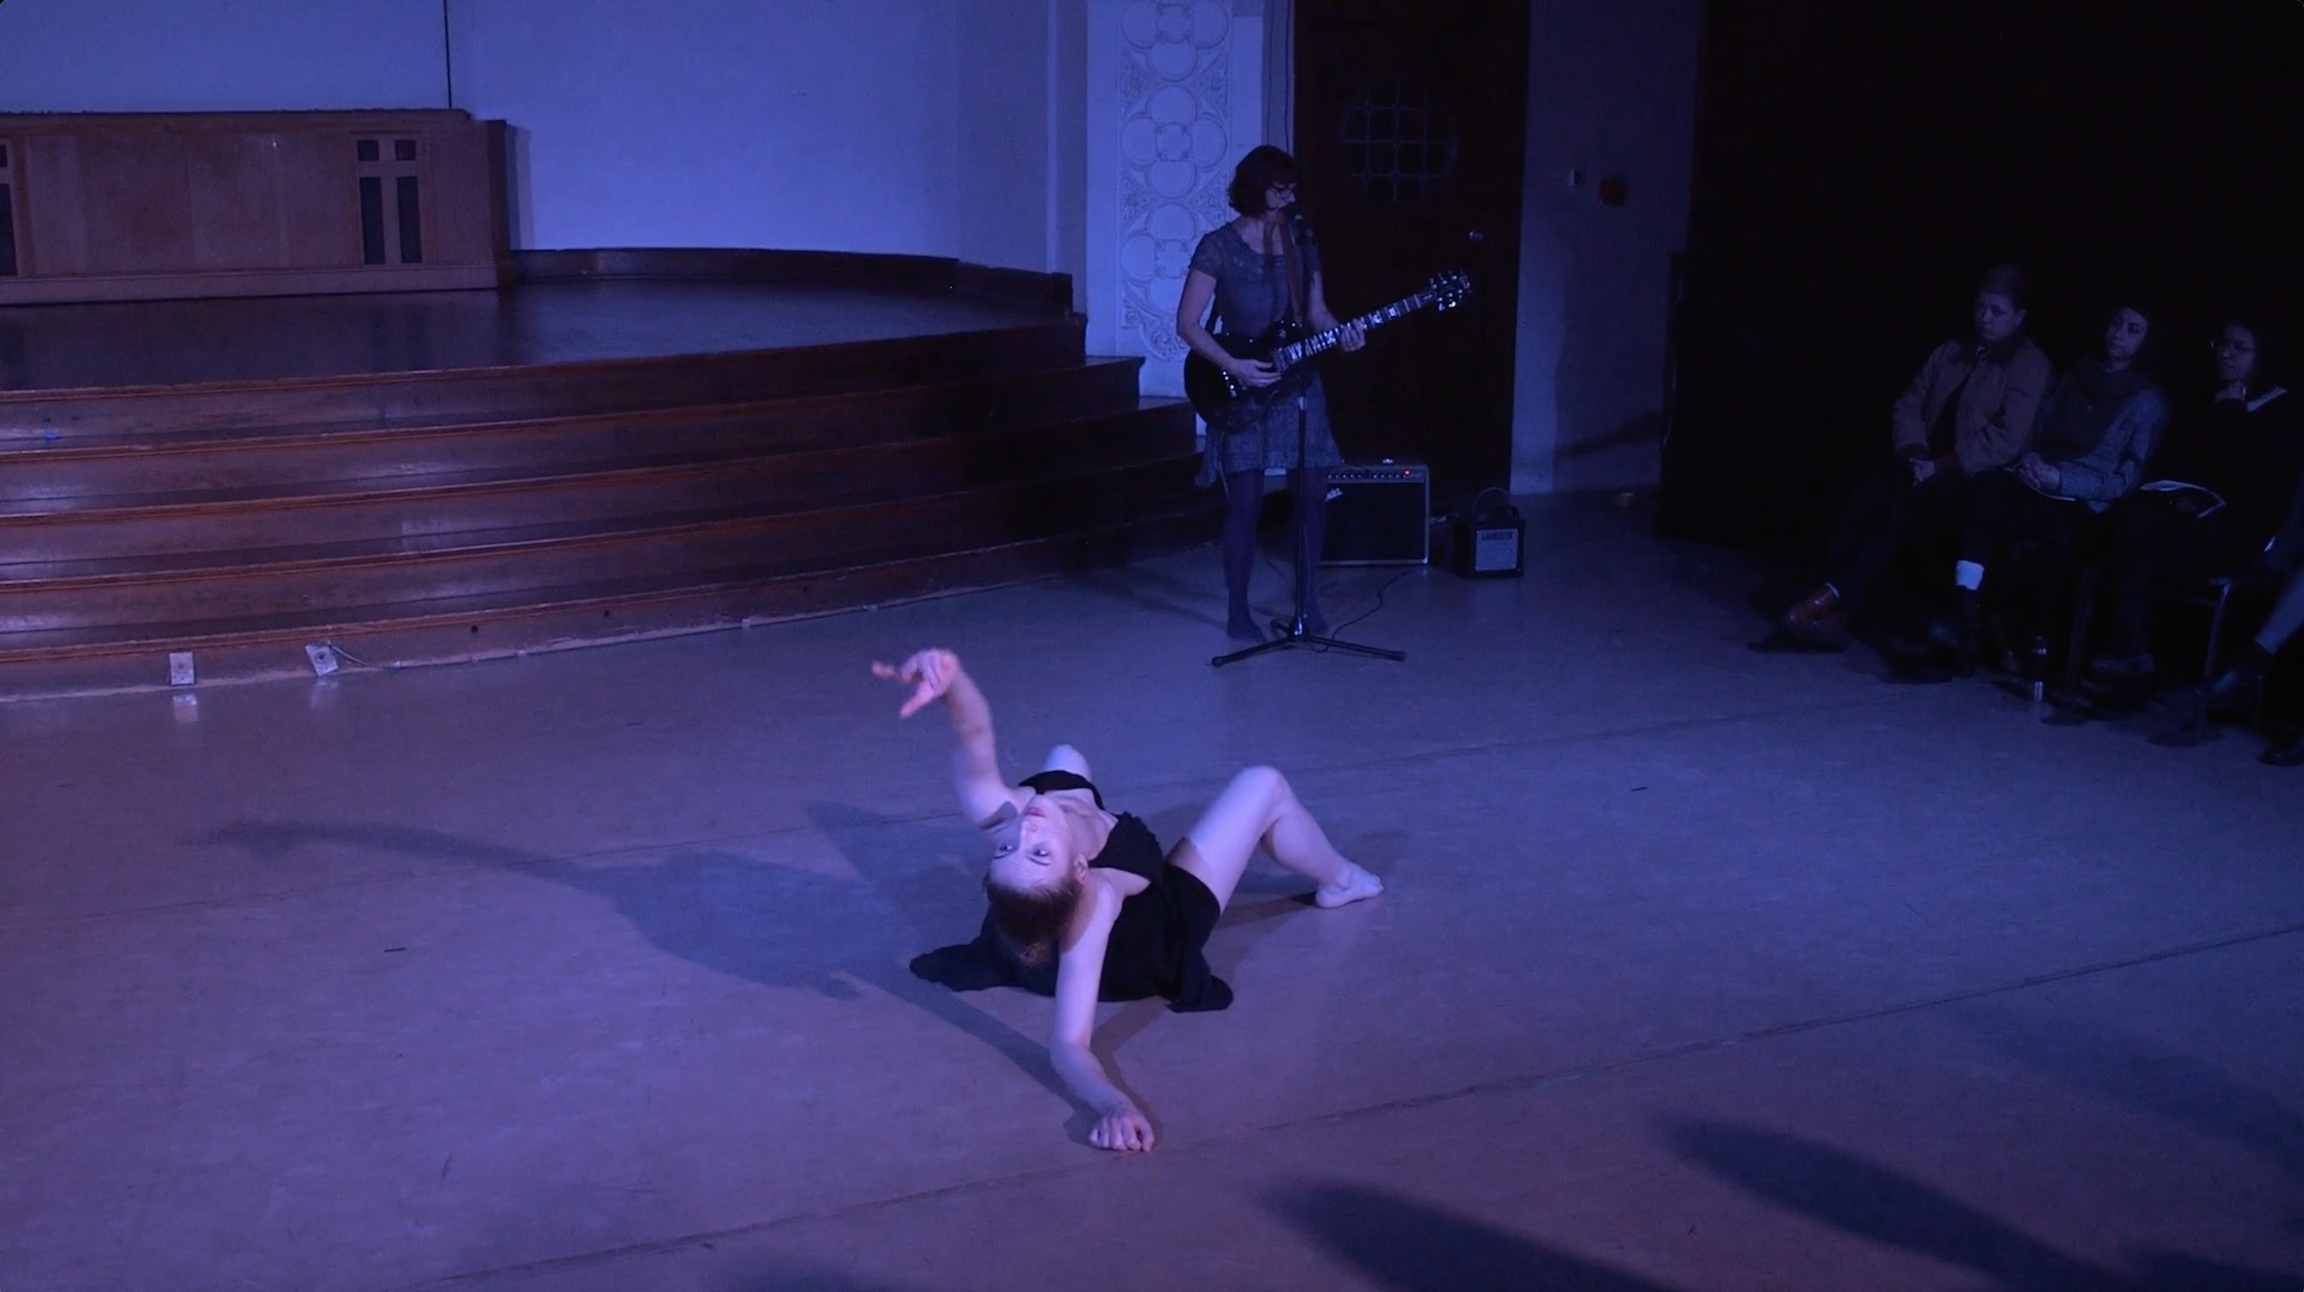 "Image: Carly Broutman and Michelle Shafer performing in ""Wax."" In the back corner, Michelle plays electric guitar and sings into a microphone on a stand. Carly is on the floor, body and feet angled toward Michelle, while leaning back on one elbow, reaching and looking past the camera. The audience is partially visible in the background and via cast shadows in the foreground. The lighting is dim and cool (blue-purple). Still from a video by John Borowski."